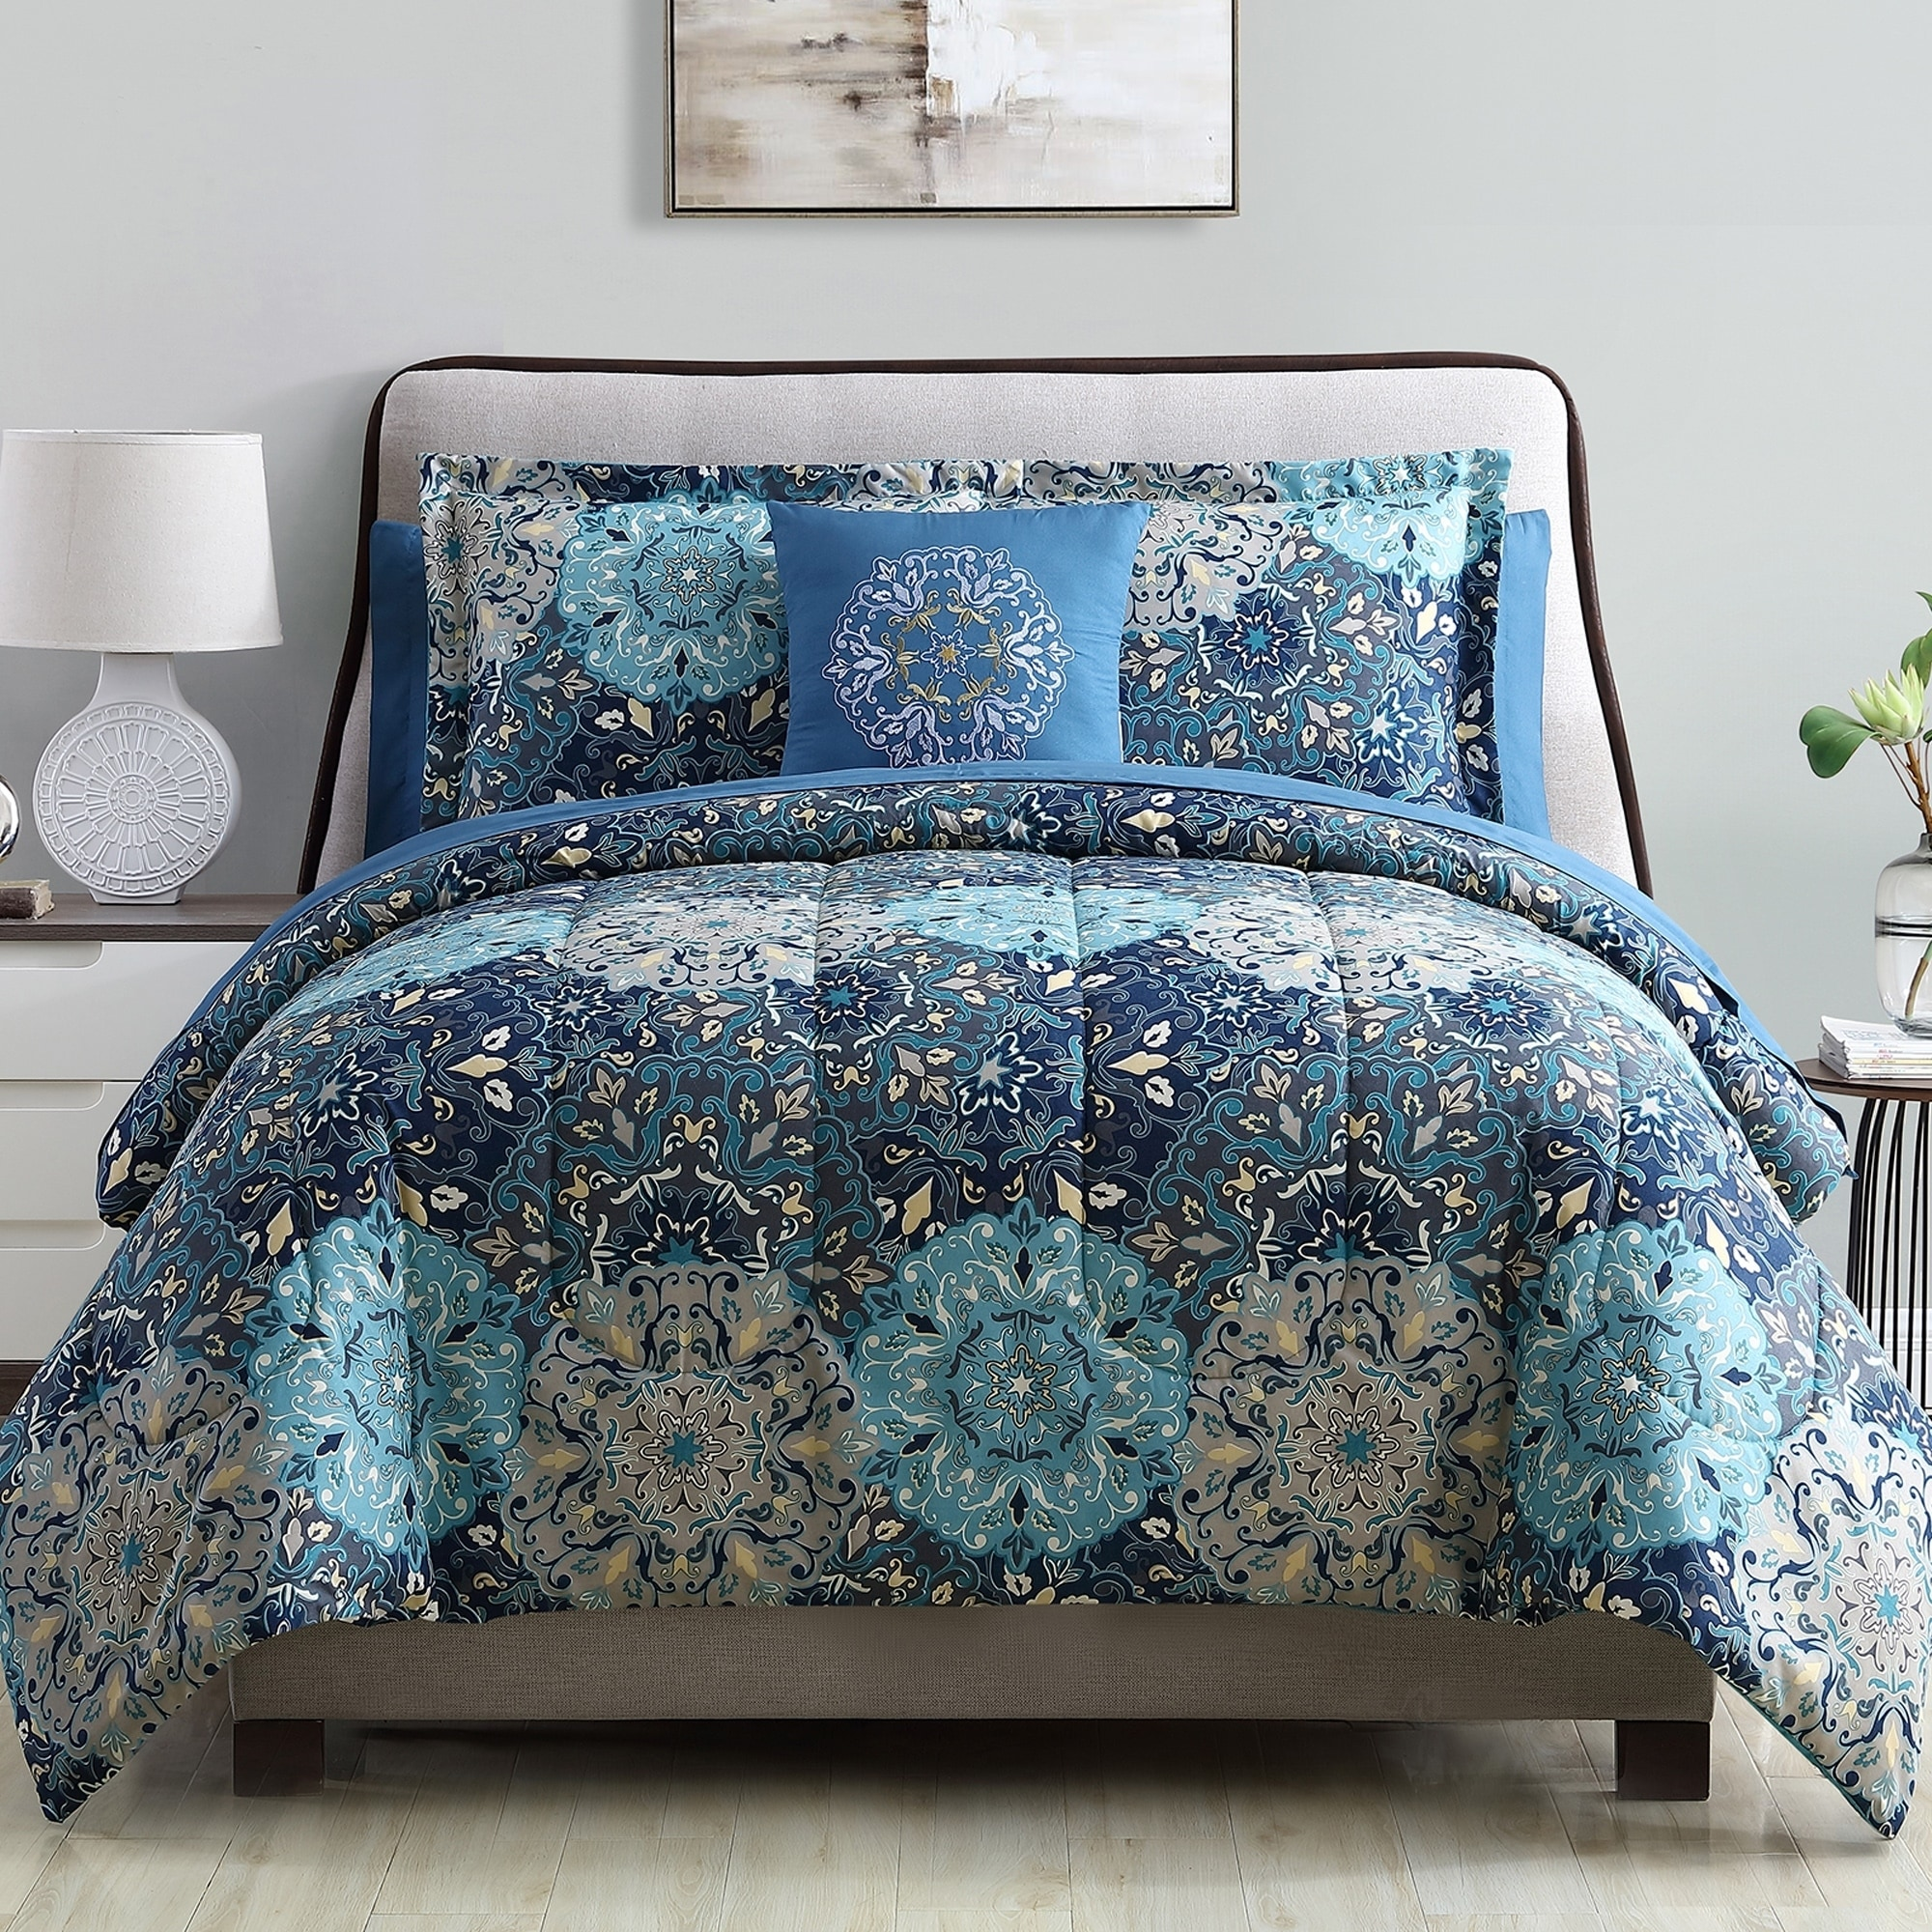 Abstract Floral Print Duvet Cover Reversible Quilt Set /& Pillowcases All Sizes